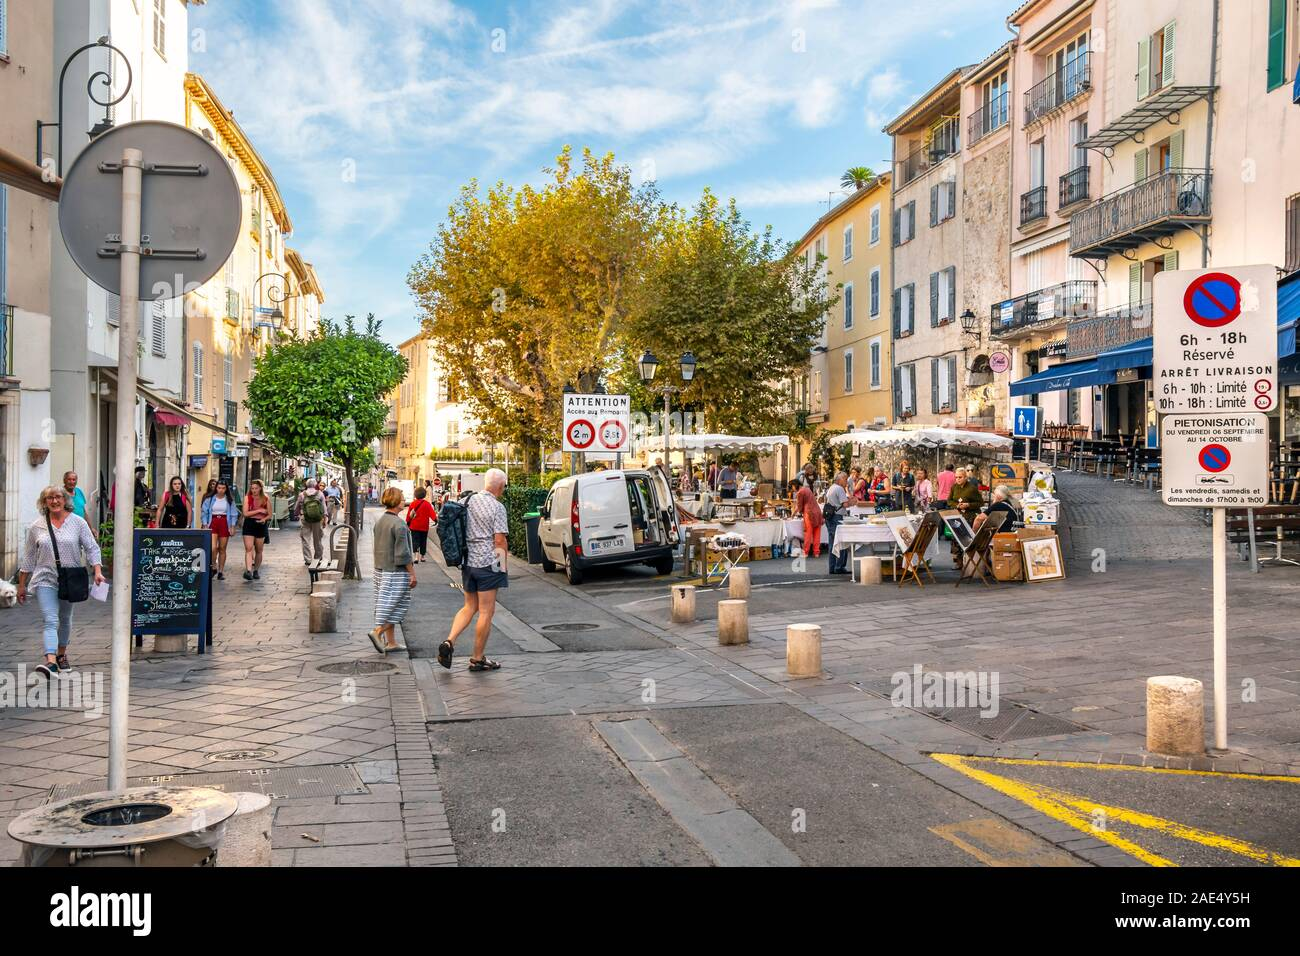 Tourists and local French enjoy a summer morning at an outdoor flea market in the historic seaside town of Antibes, France, on the French Riviera. Stock Photo